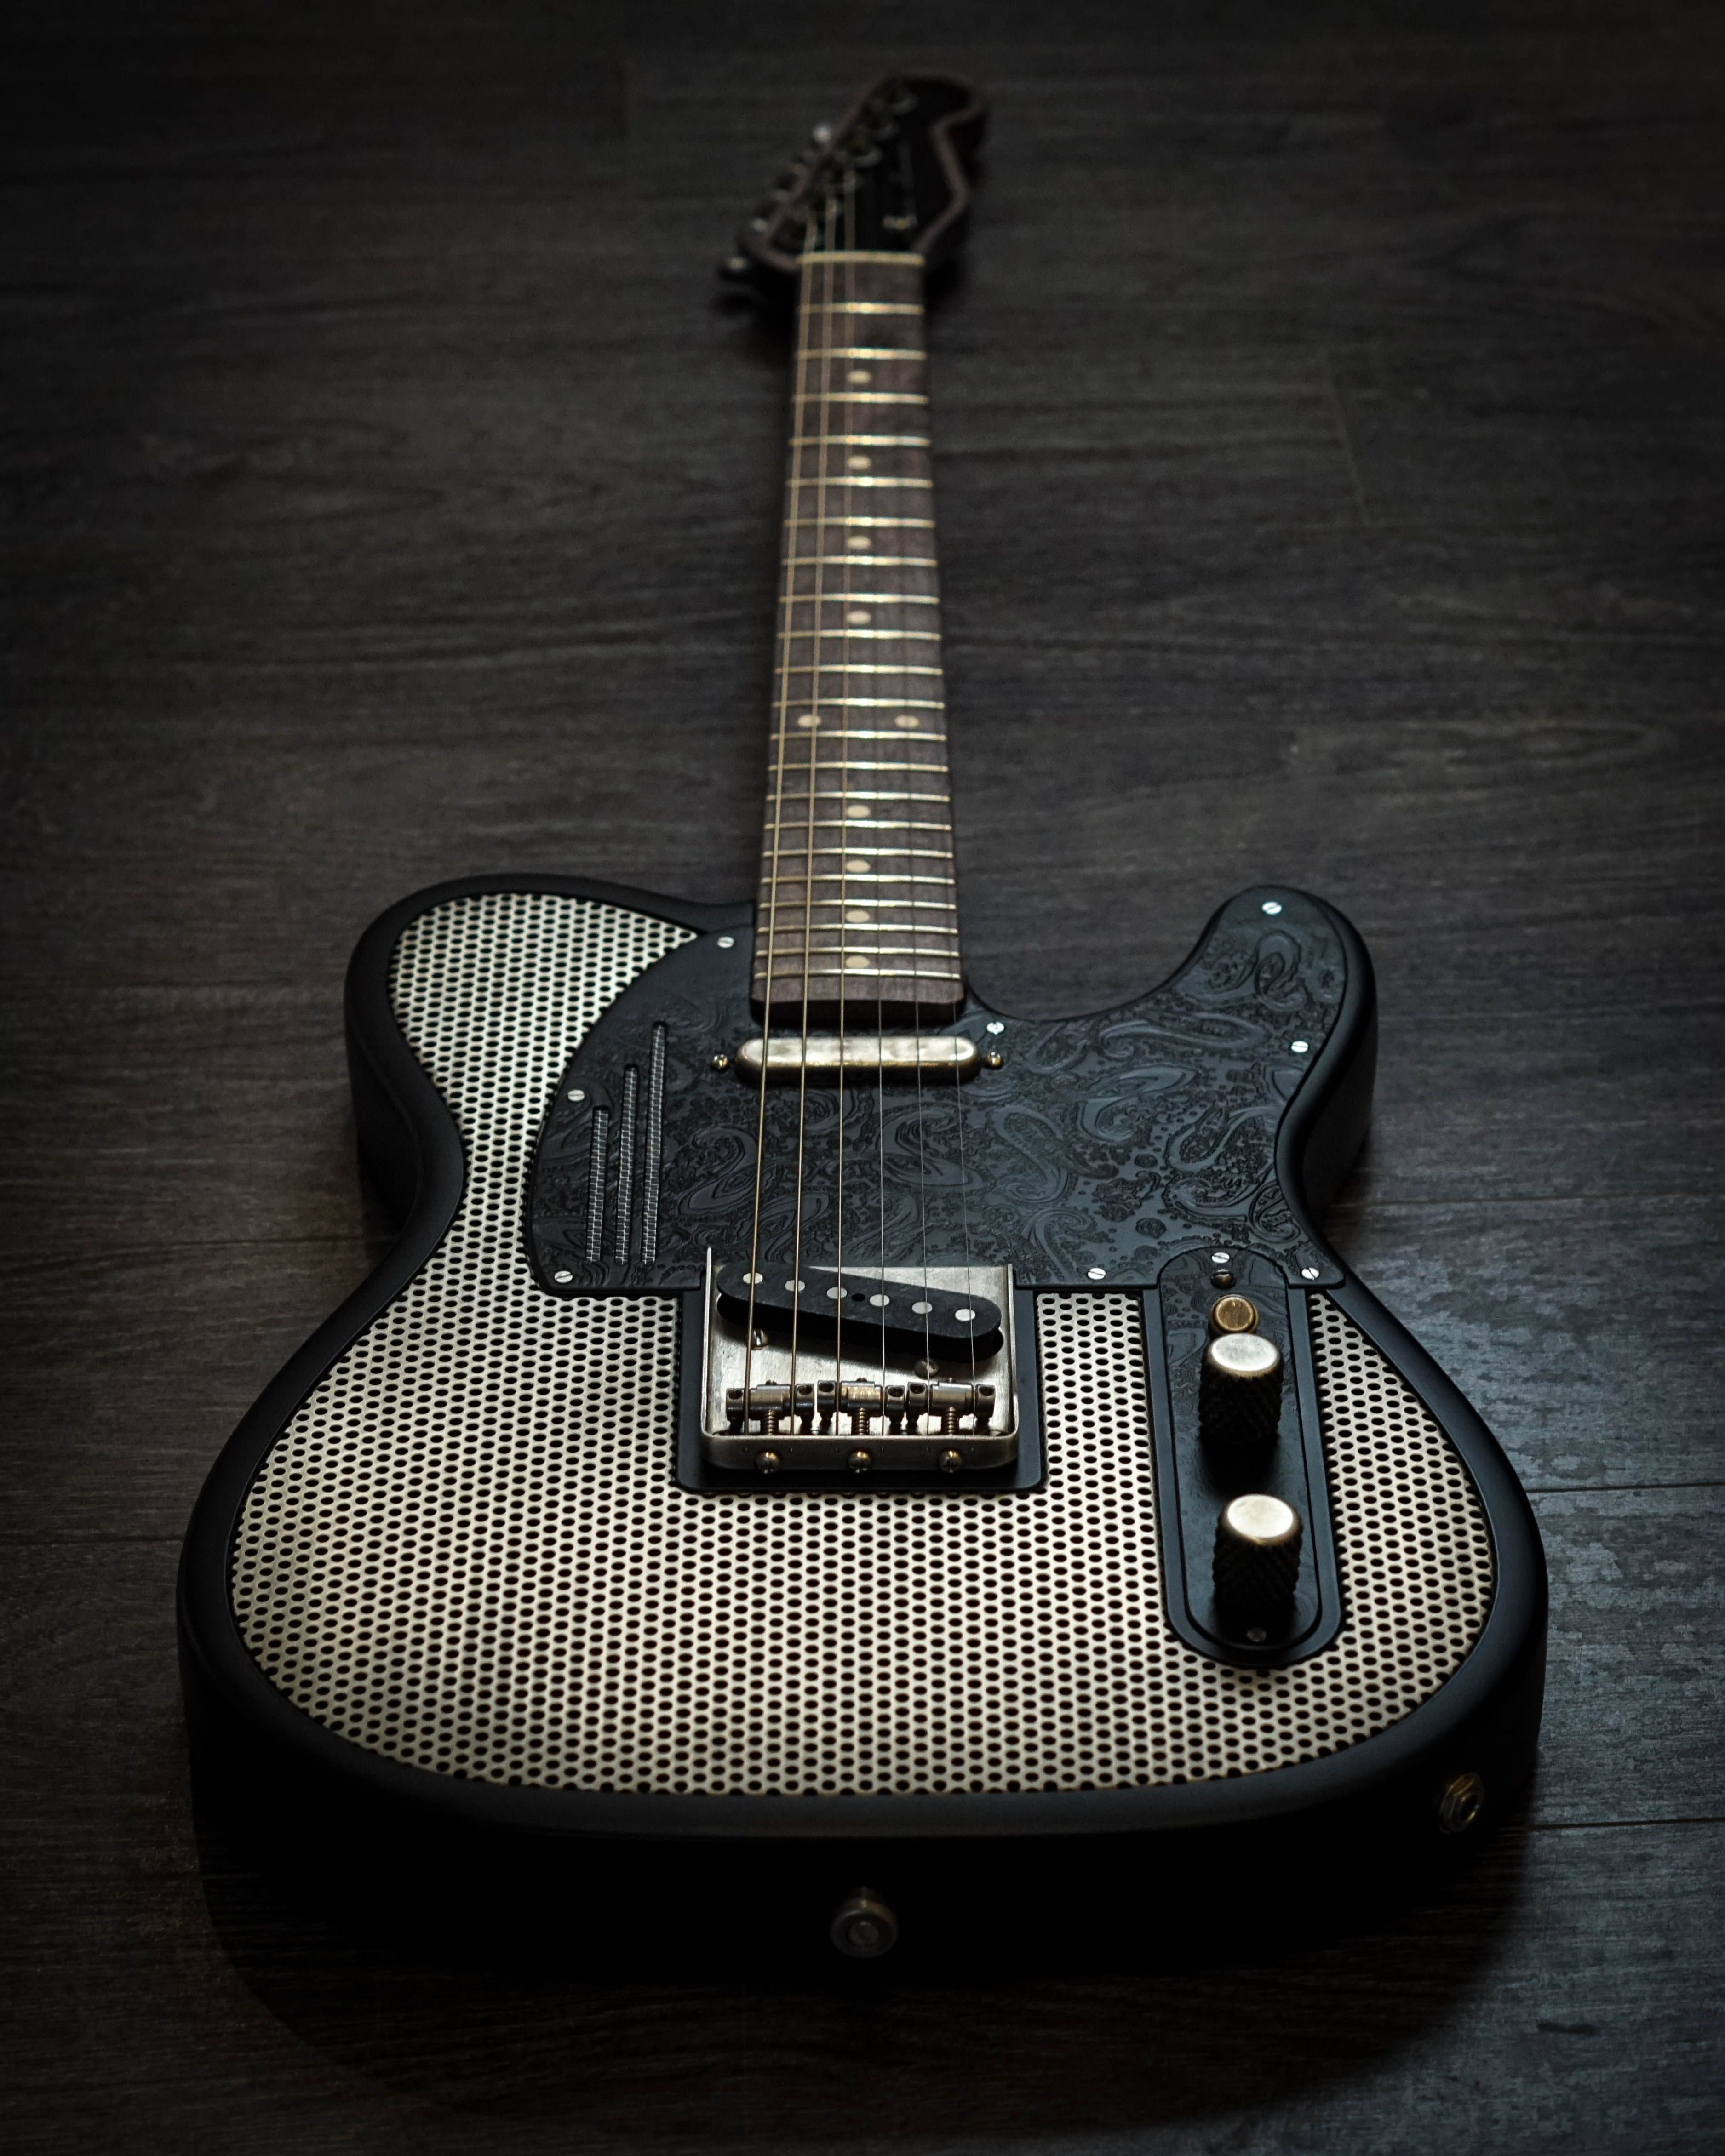 James Trussart Holey Steelcaster in Silver & Black. Available at distinctiveguitar.com. #customguitars